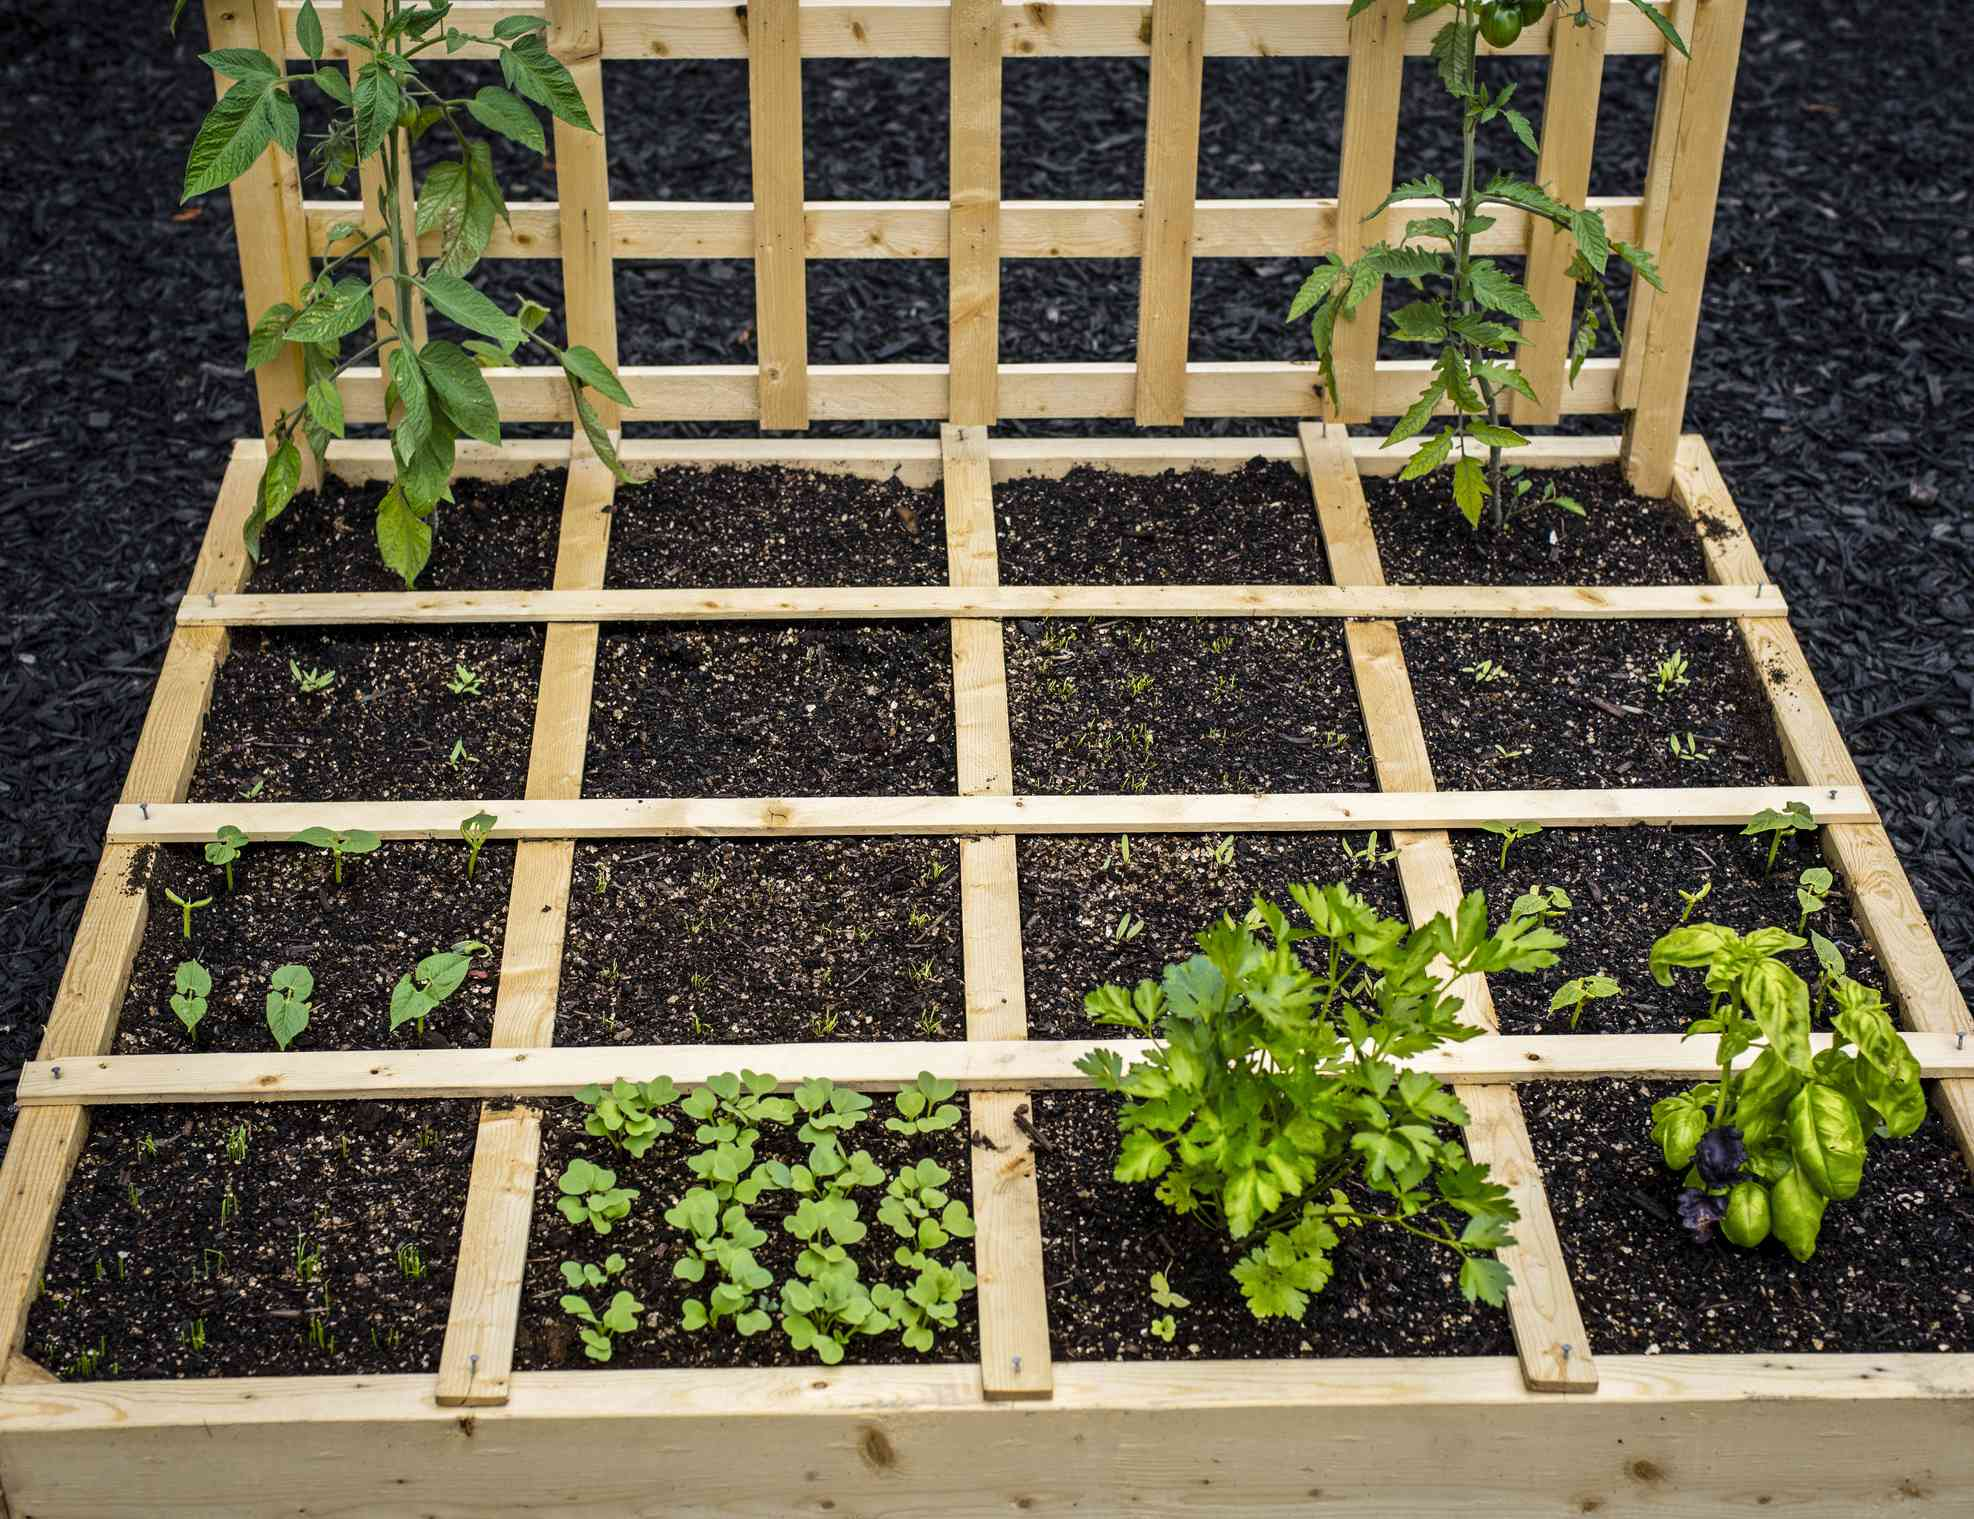 Square foot gardening maximizes small spaces